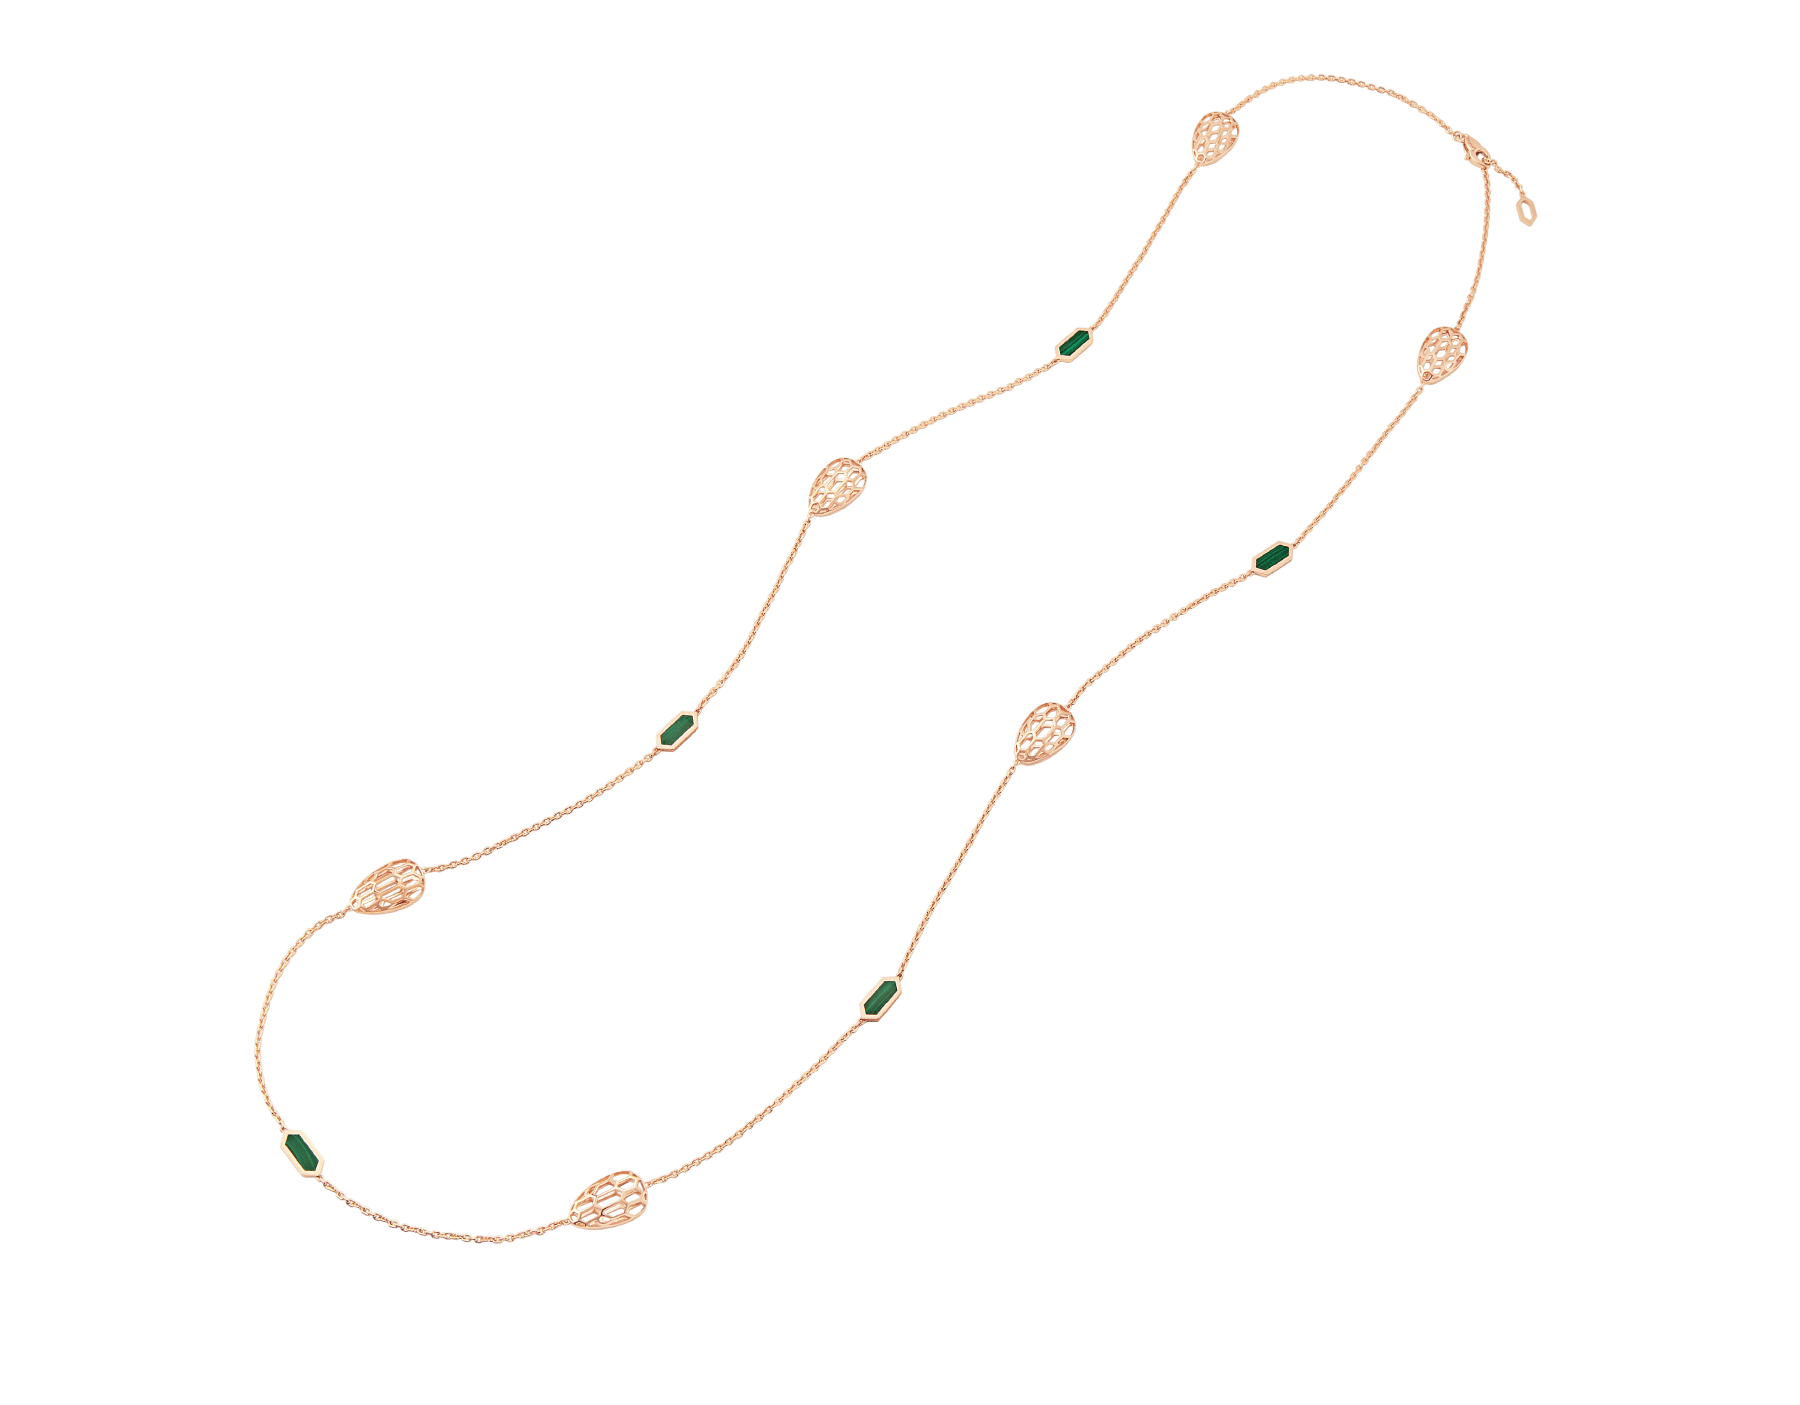 Serpenti sautoir in 18 kt rose gold set with malachite elements. 352677 image 2